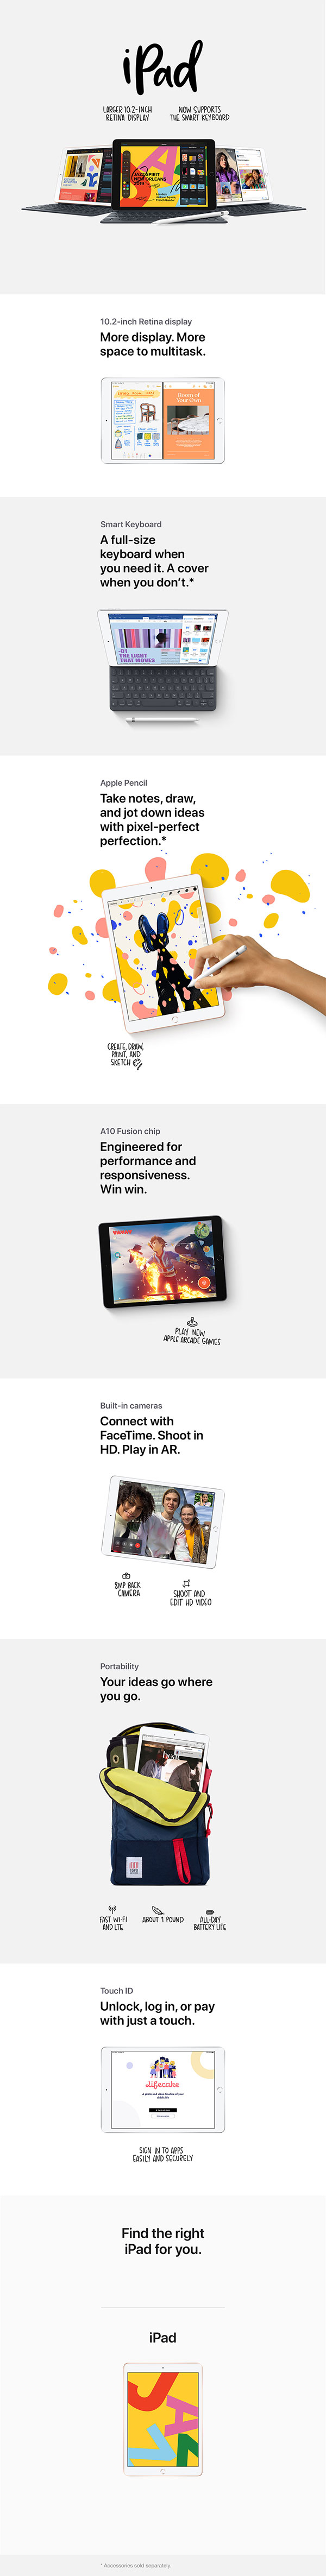 iPad Product Overview Page Mobile